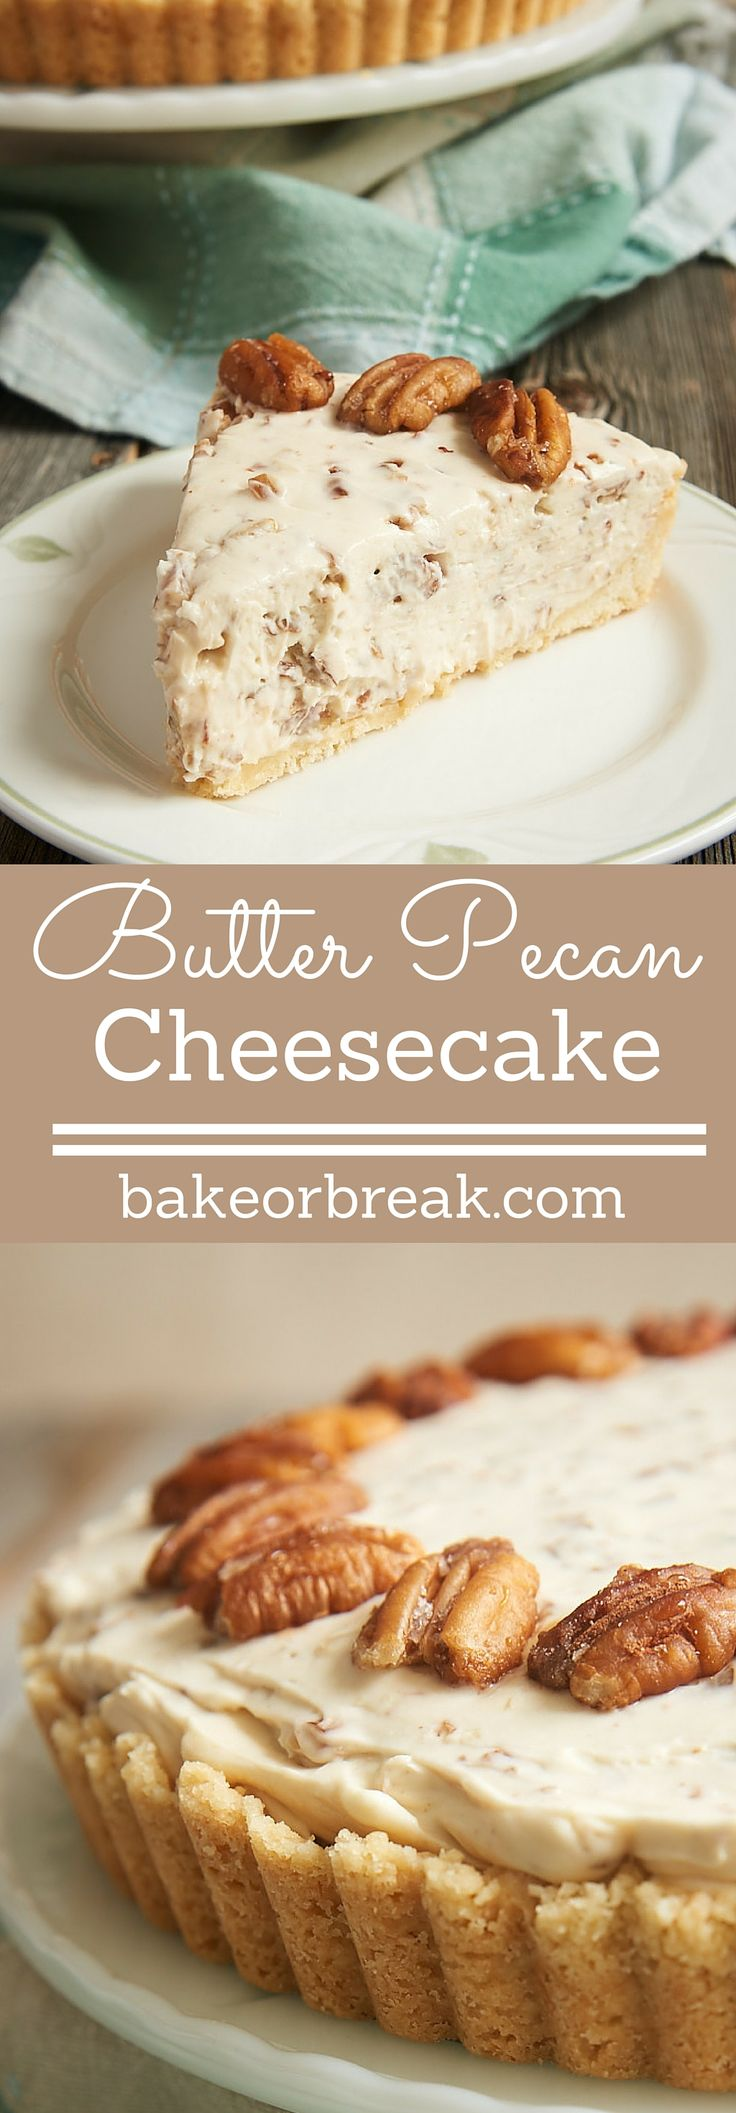 If butter pecan is your favorite ice cream, then this Butter Pecan Cheesecake may very well be your favorite cheesecake! It's filled with buttery, toasty pecans, and it is absolutely fantastic! - Bake or Break ~ http://www.bakeorbreak.com